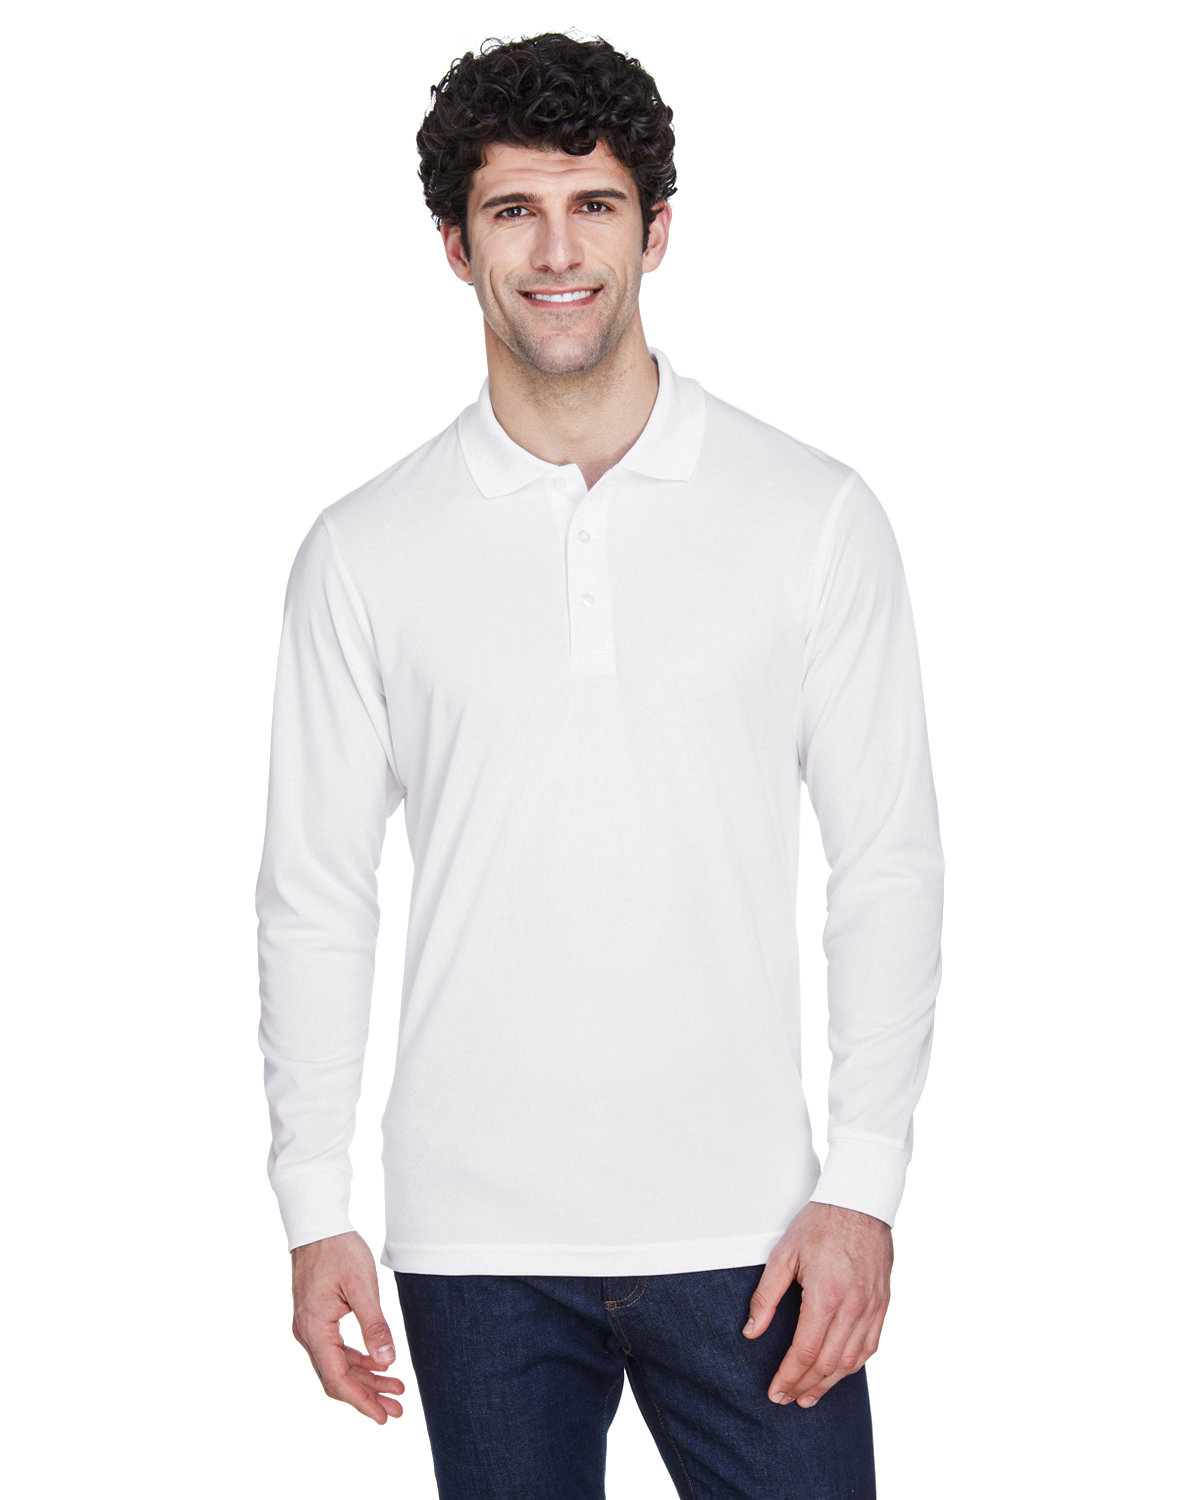 Core 365 Men's Tall Pinnacle Performance Long-Sleeve Piqué Polo WHITE